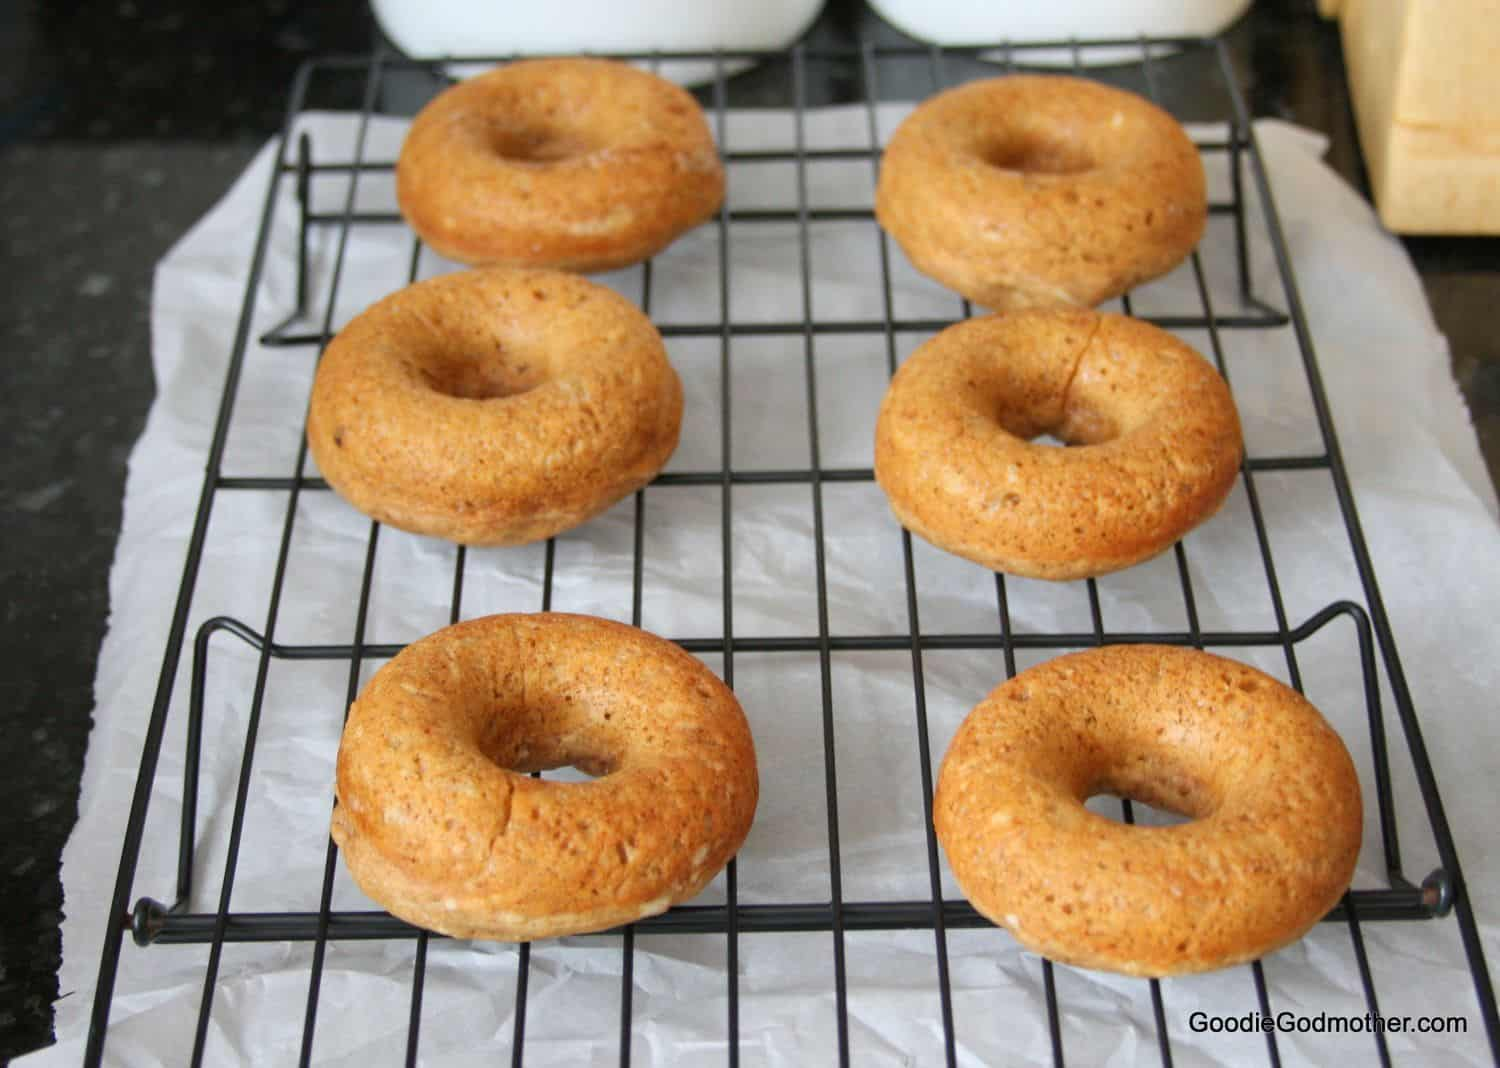 Gingerbread Baked Doughnuts - Goodie Godmother - A Recipe ...